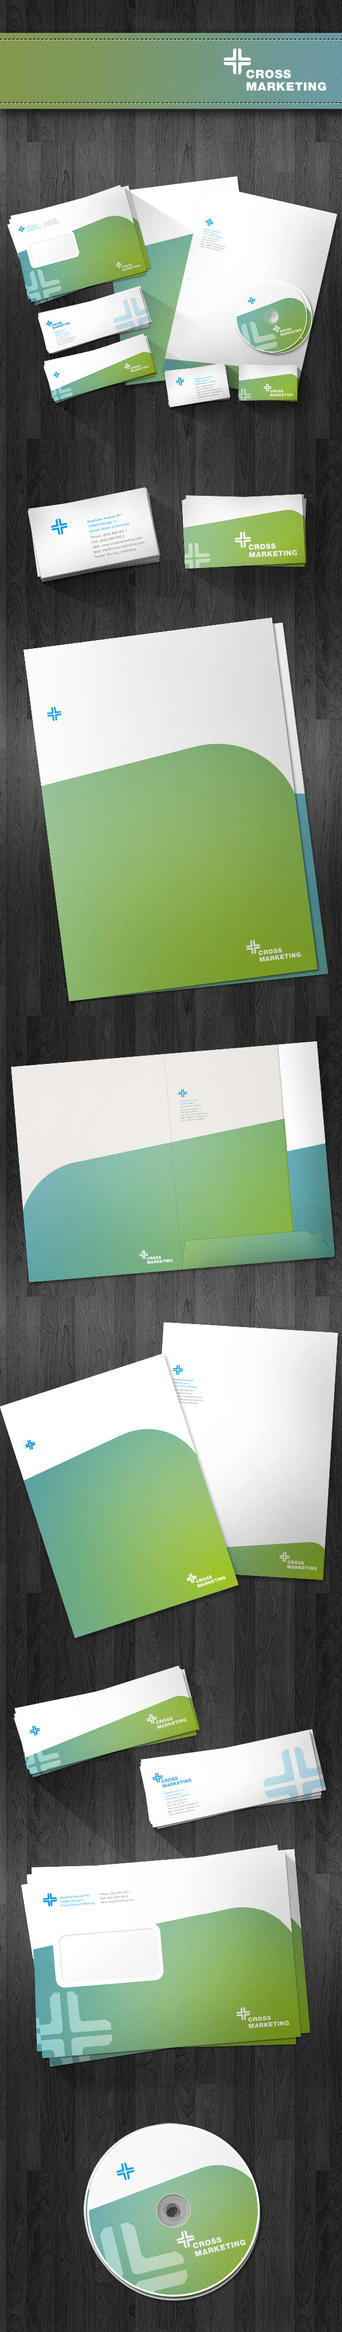 Cross Marketing Stationery Package by Lung2005